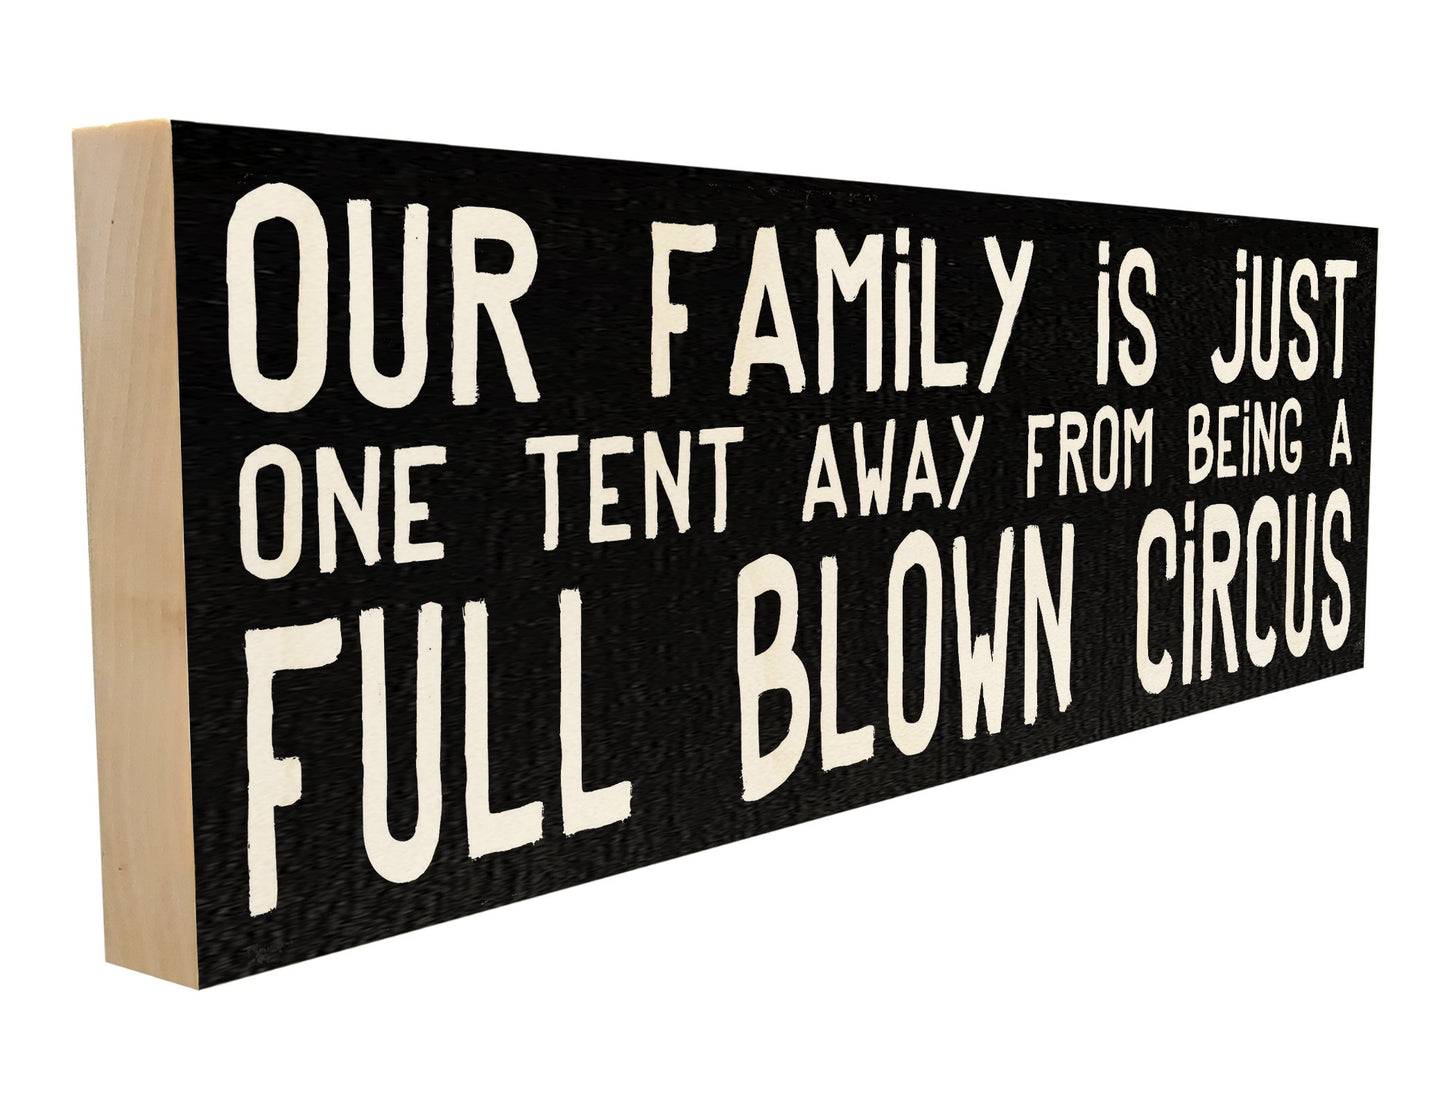 Our Family is just One Tent Away from being a Full Blown Circus.